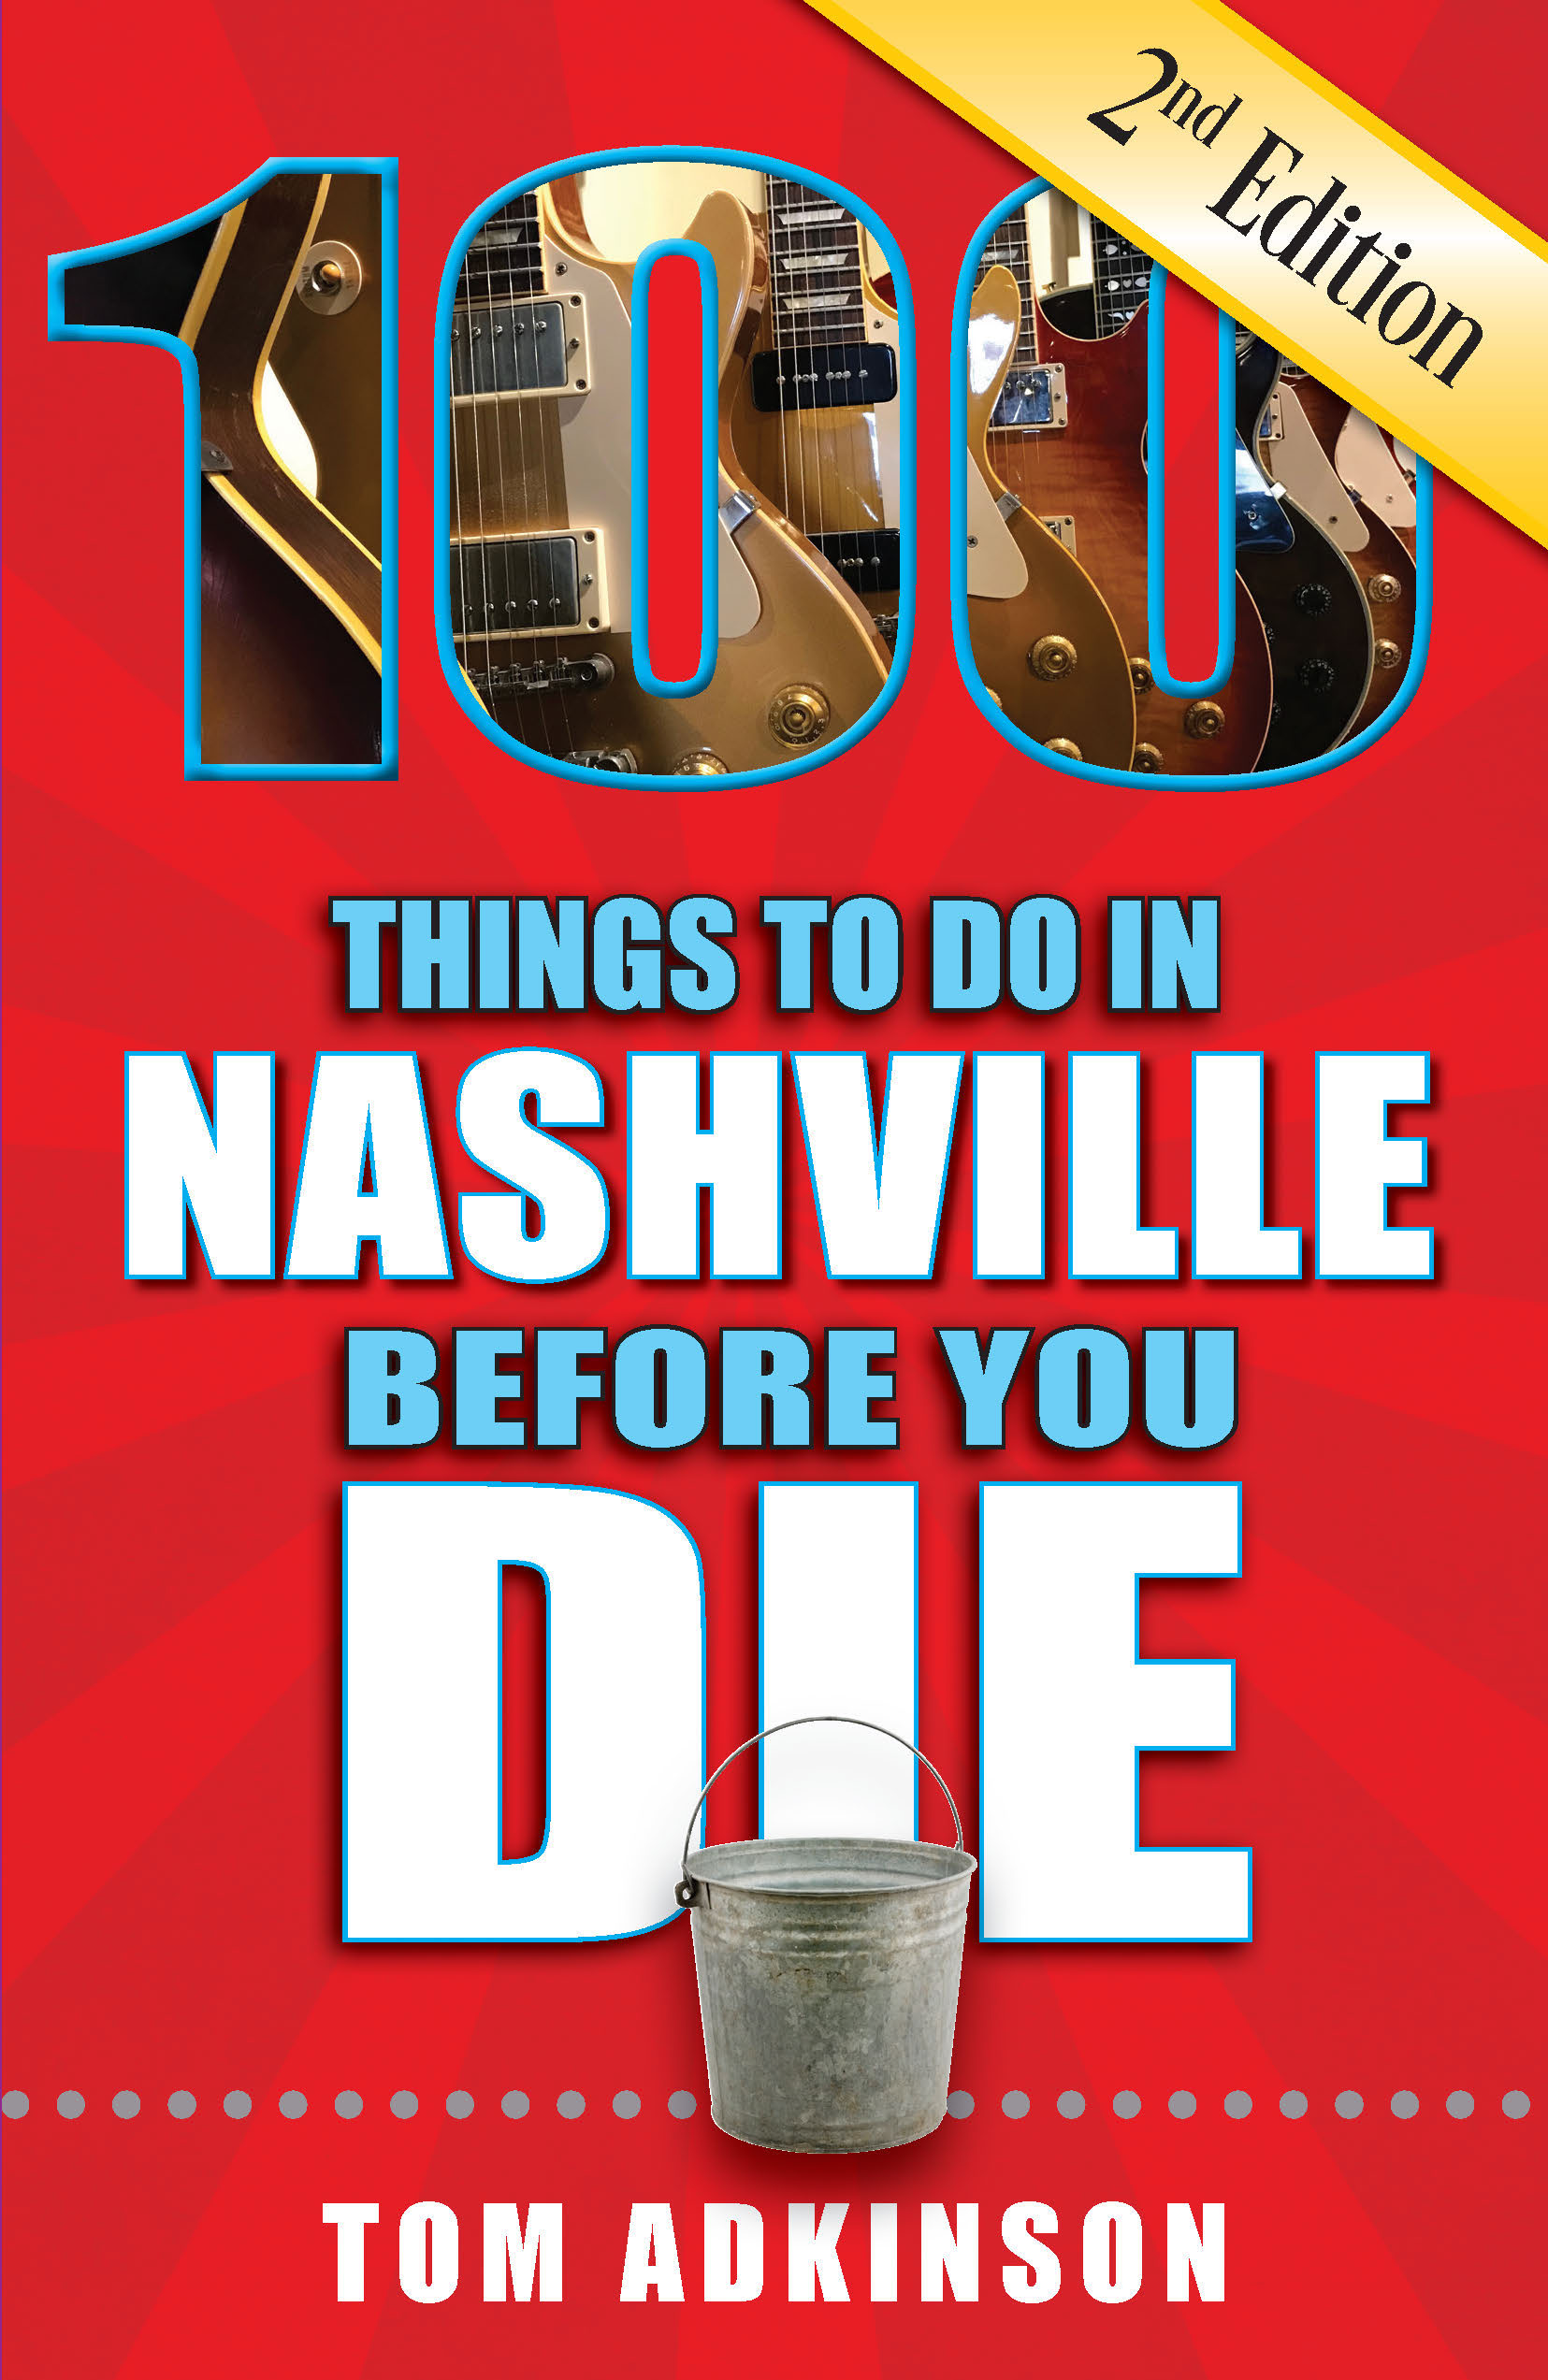 100 Things to Do in Nashville Before You Die, Second Edition cover copy